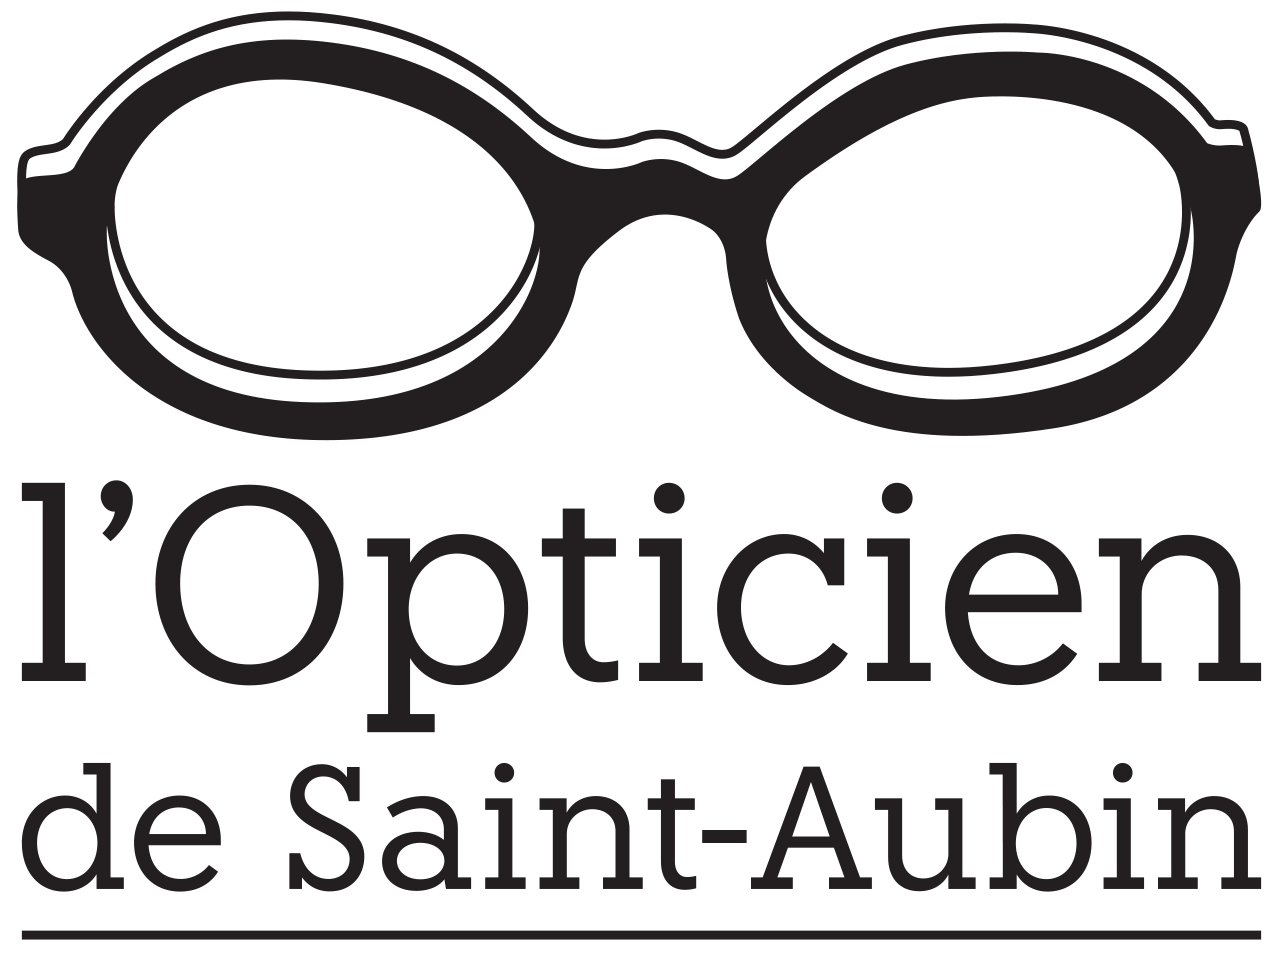 L'opticien de Saint Aubin